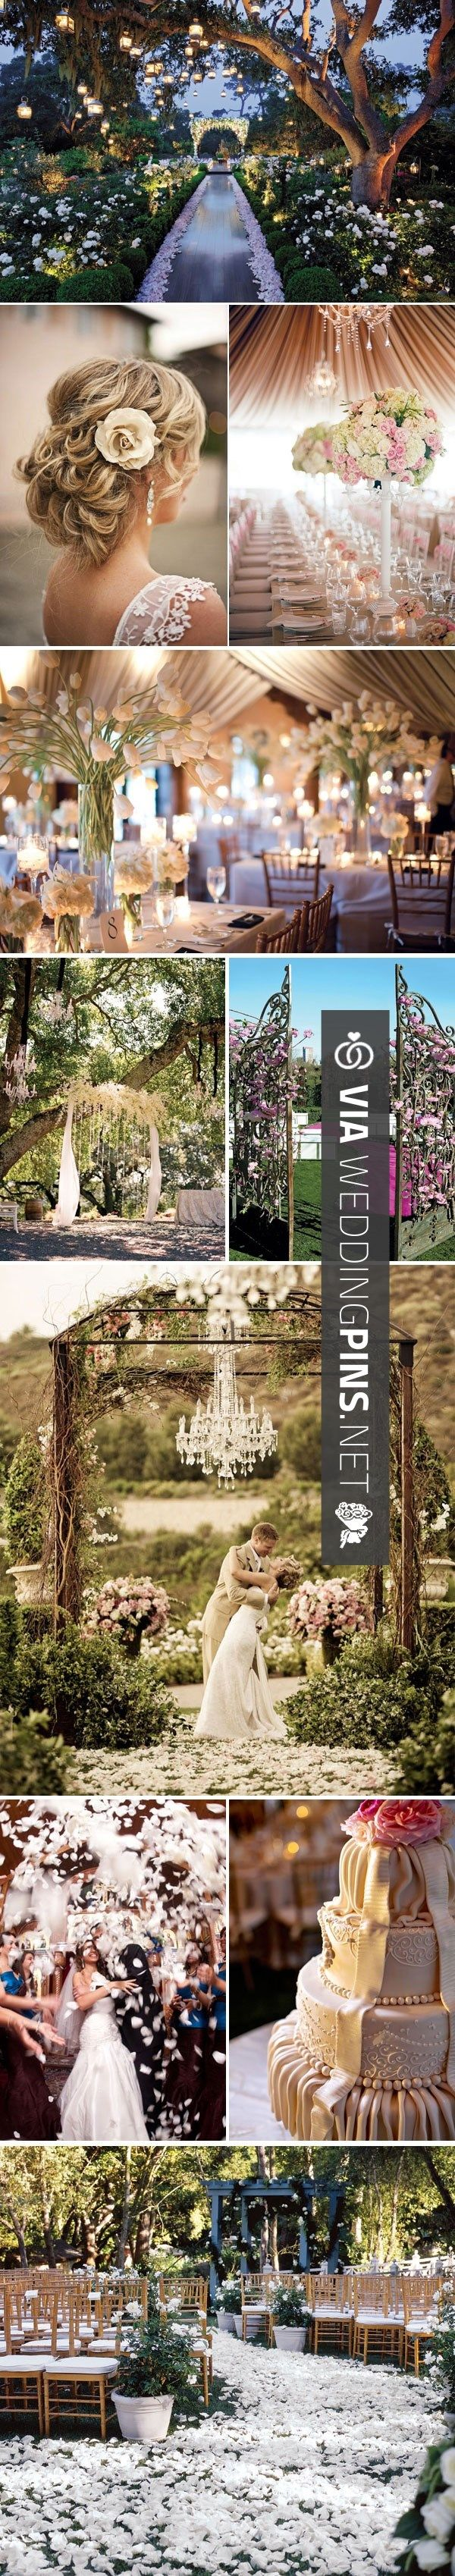 Nice - Romantic wedding inspiration | CHECK OUT MORE IDEAS AT WEDDINGPINS.NET | #weddings #travel #travelthemes #weddingplanning #coolideas #events #forweddings #weddingplaces #romance #beauty #planners #weddingdestinations #travelthemedweddings #romanticplaces #eventplanners #weddingdress #weddingcake #brides #grooms #weddinginvitations